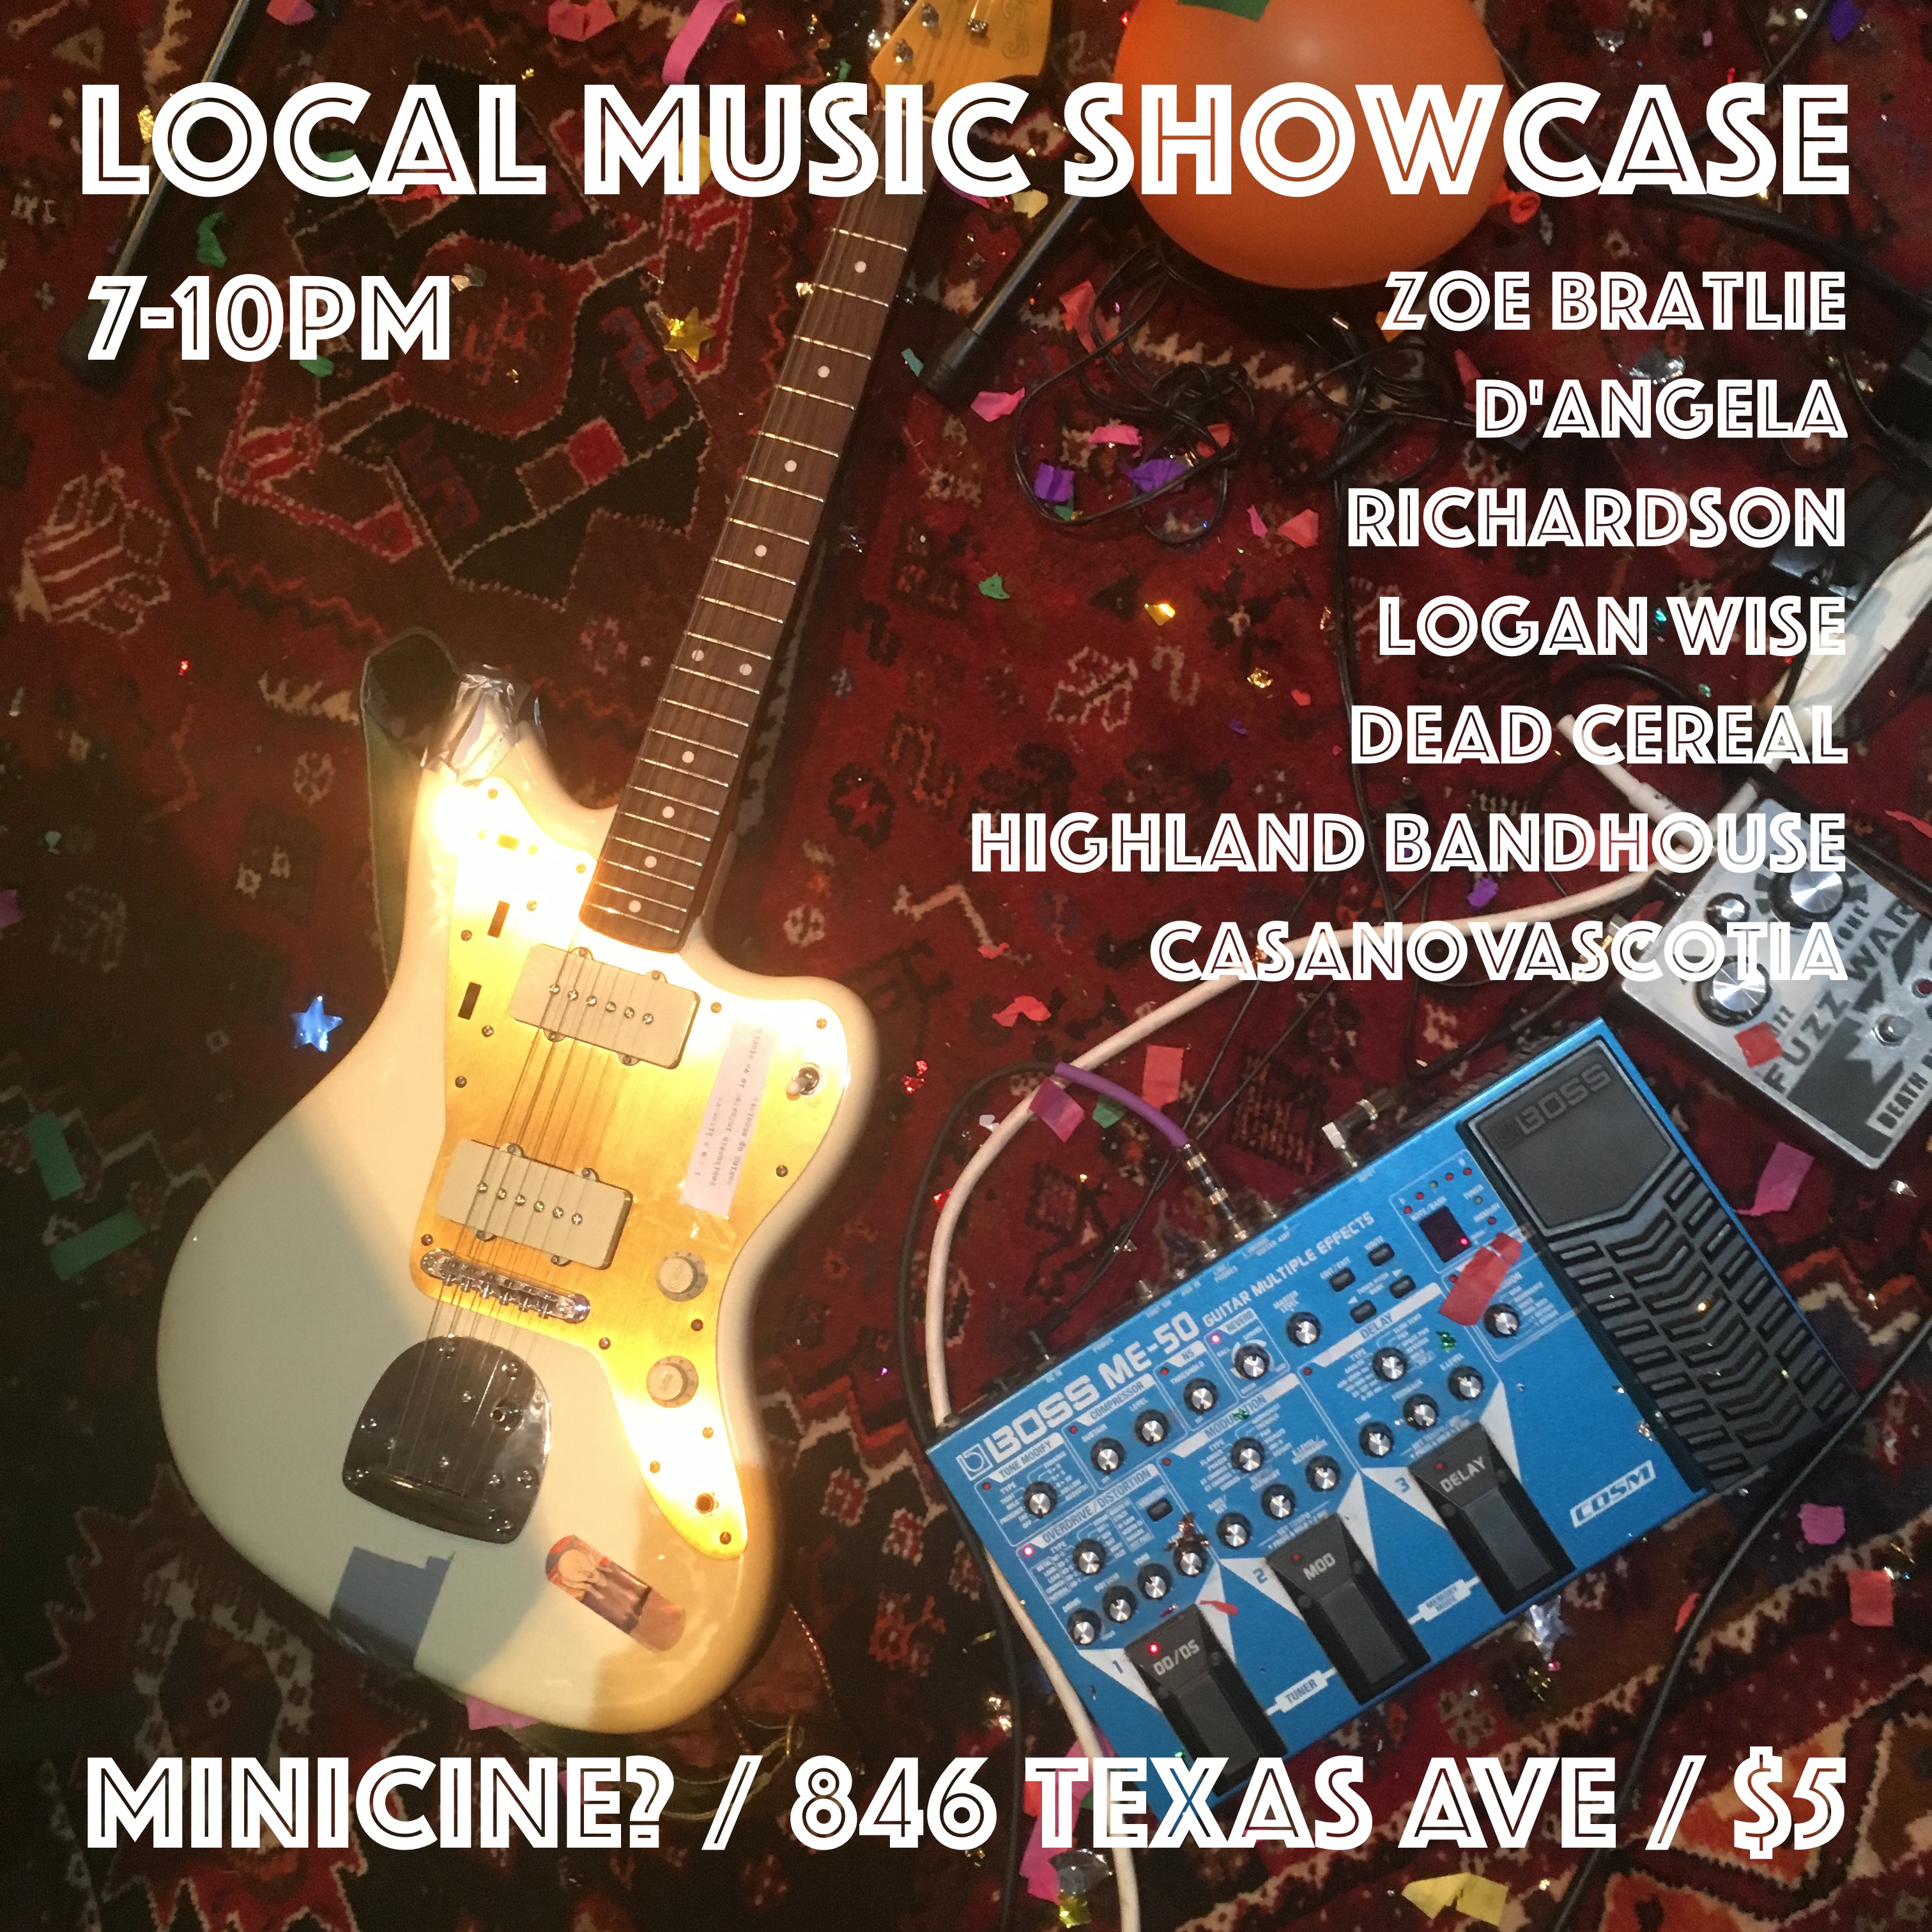 Local Music Showcase flyer